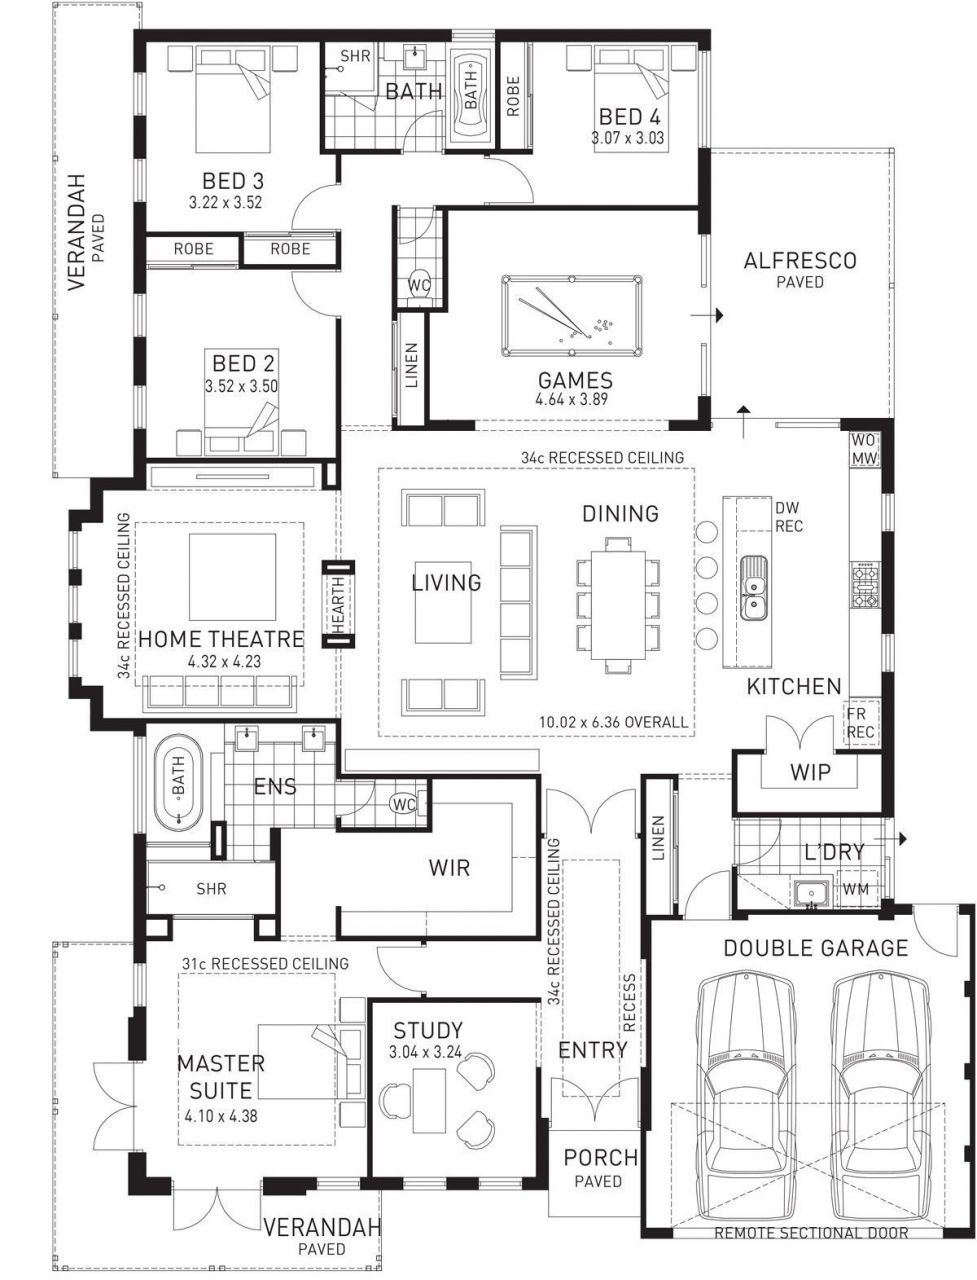 Design Your Own House Plan Inspirational 99 Make Your Own House Design 2019